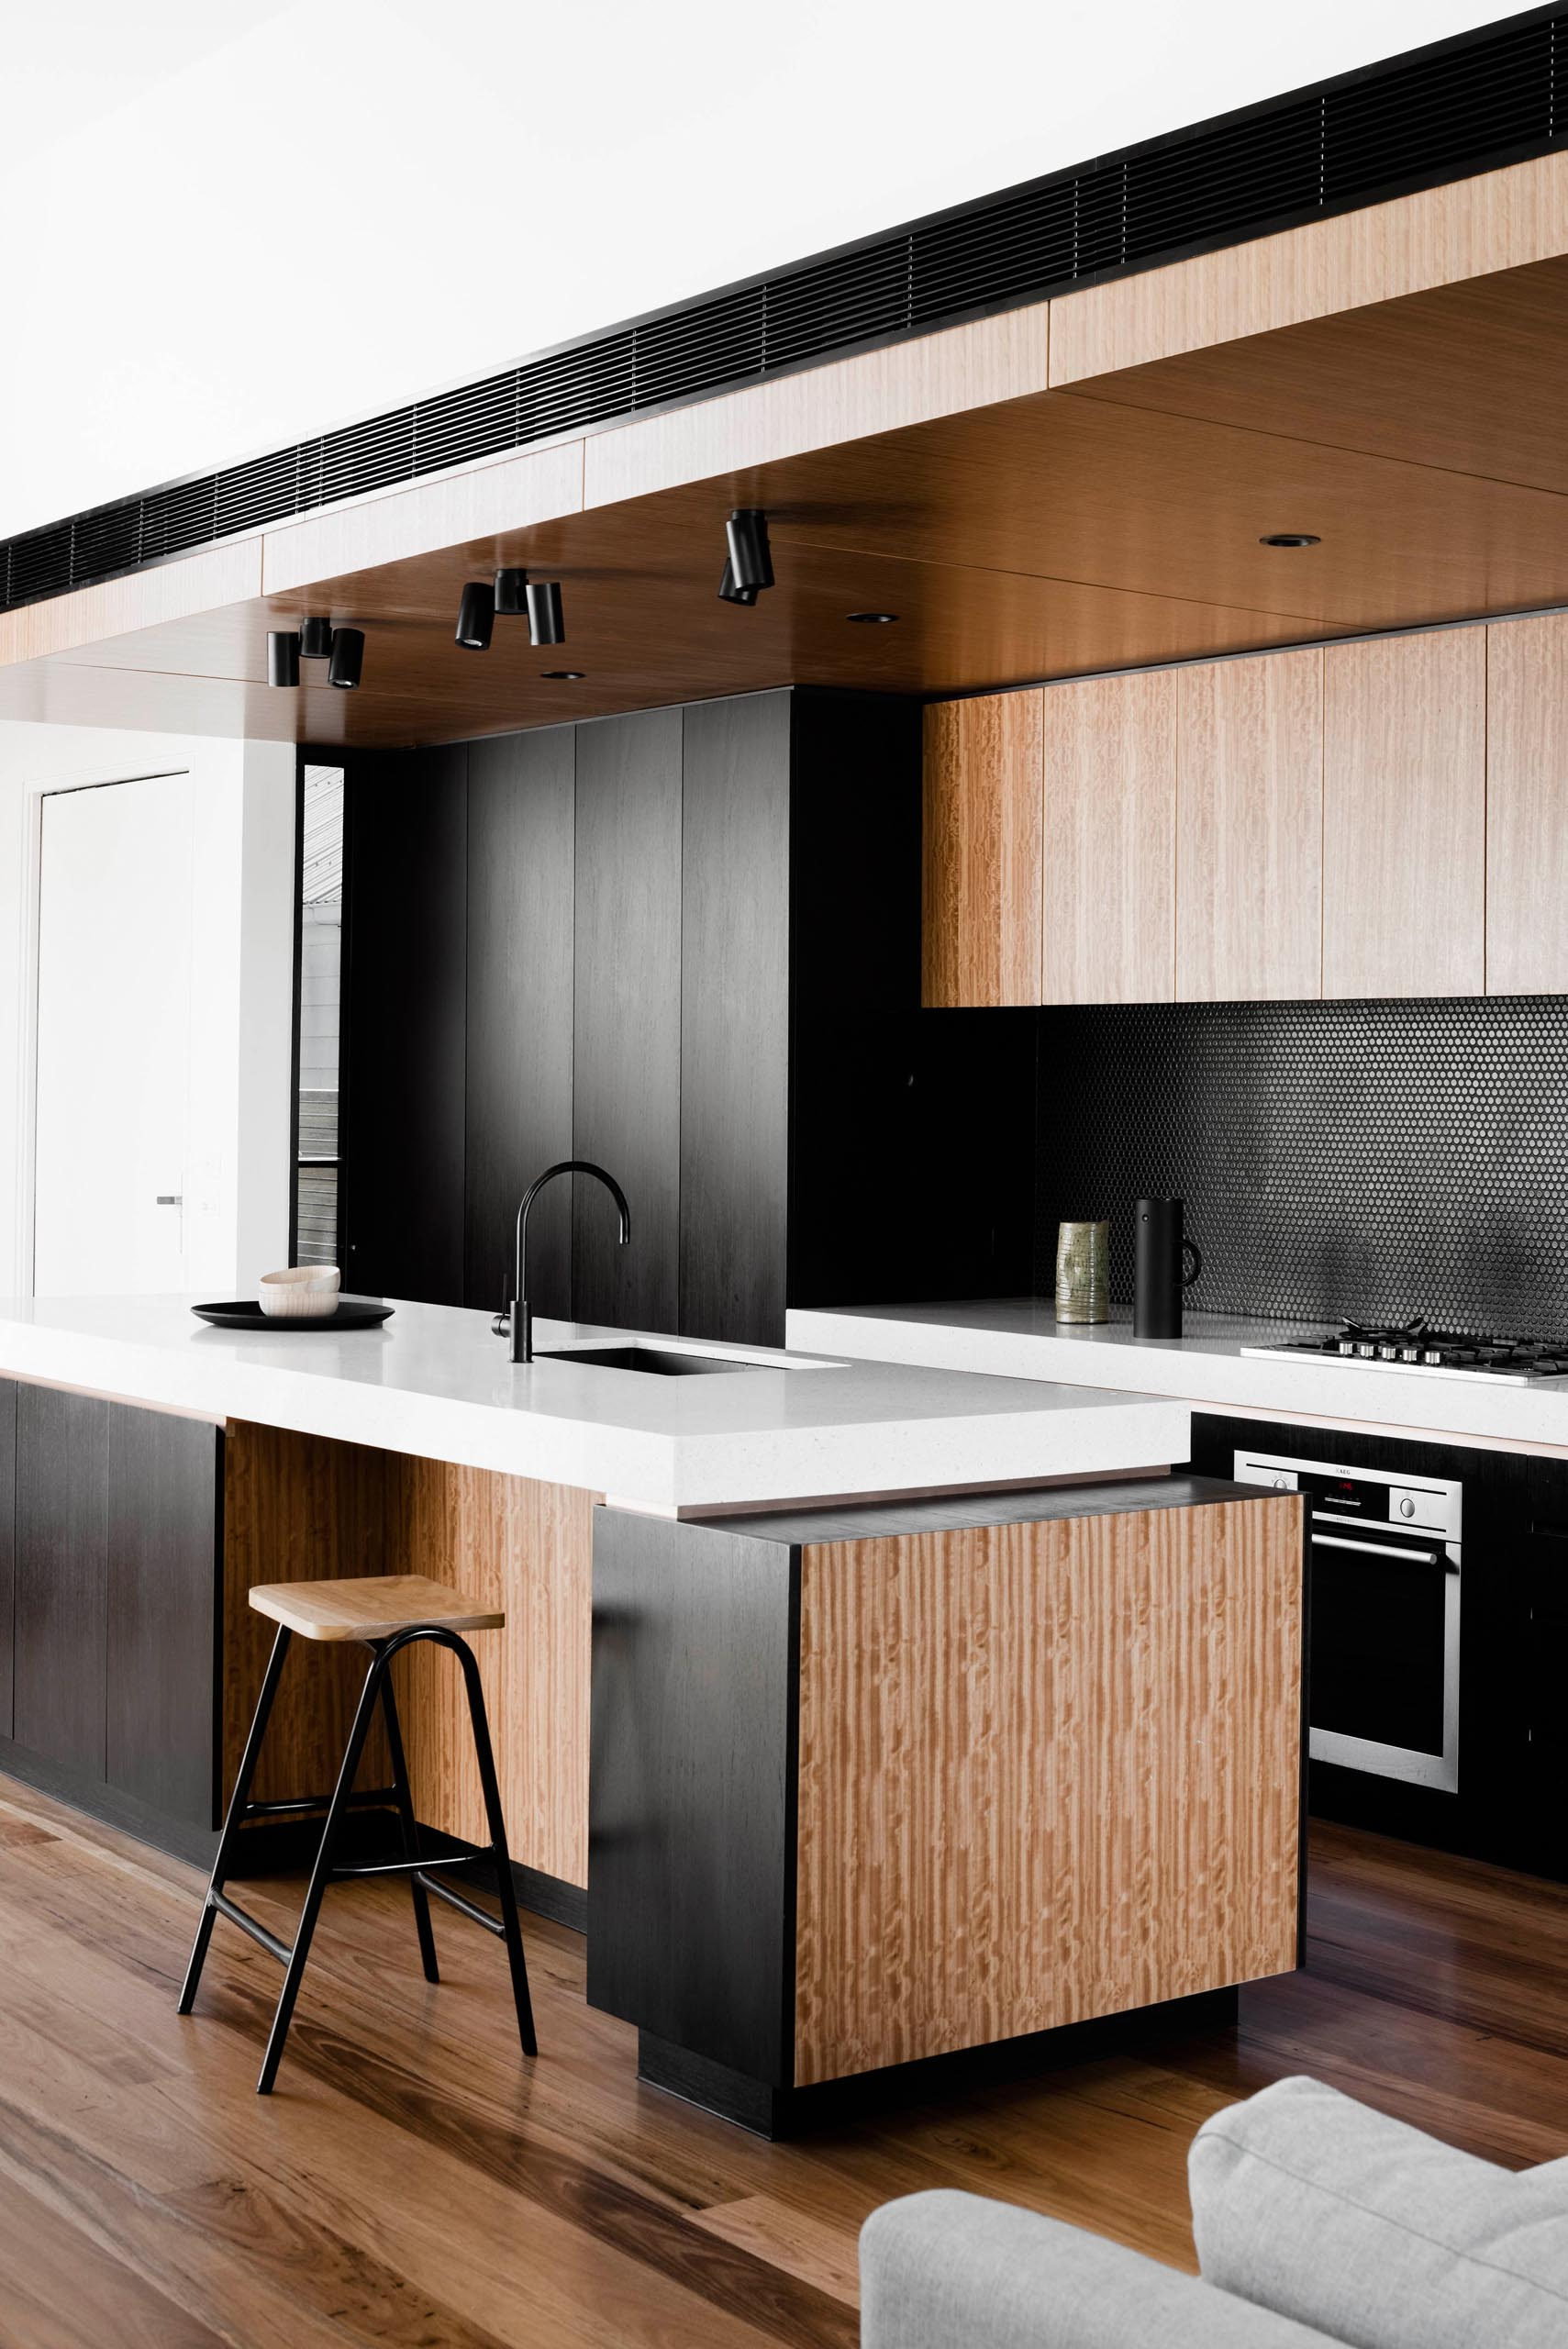 A modern kitchen with black and wood cabinets, a penny tile backsplash, and a white countertop.